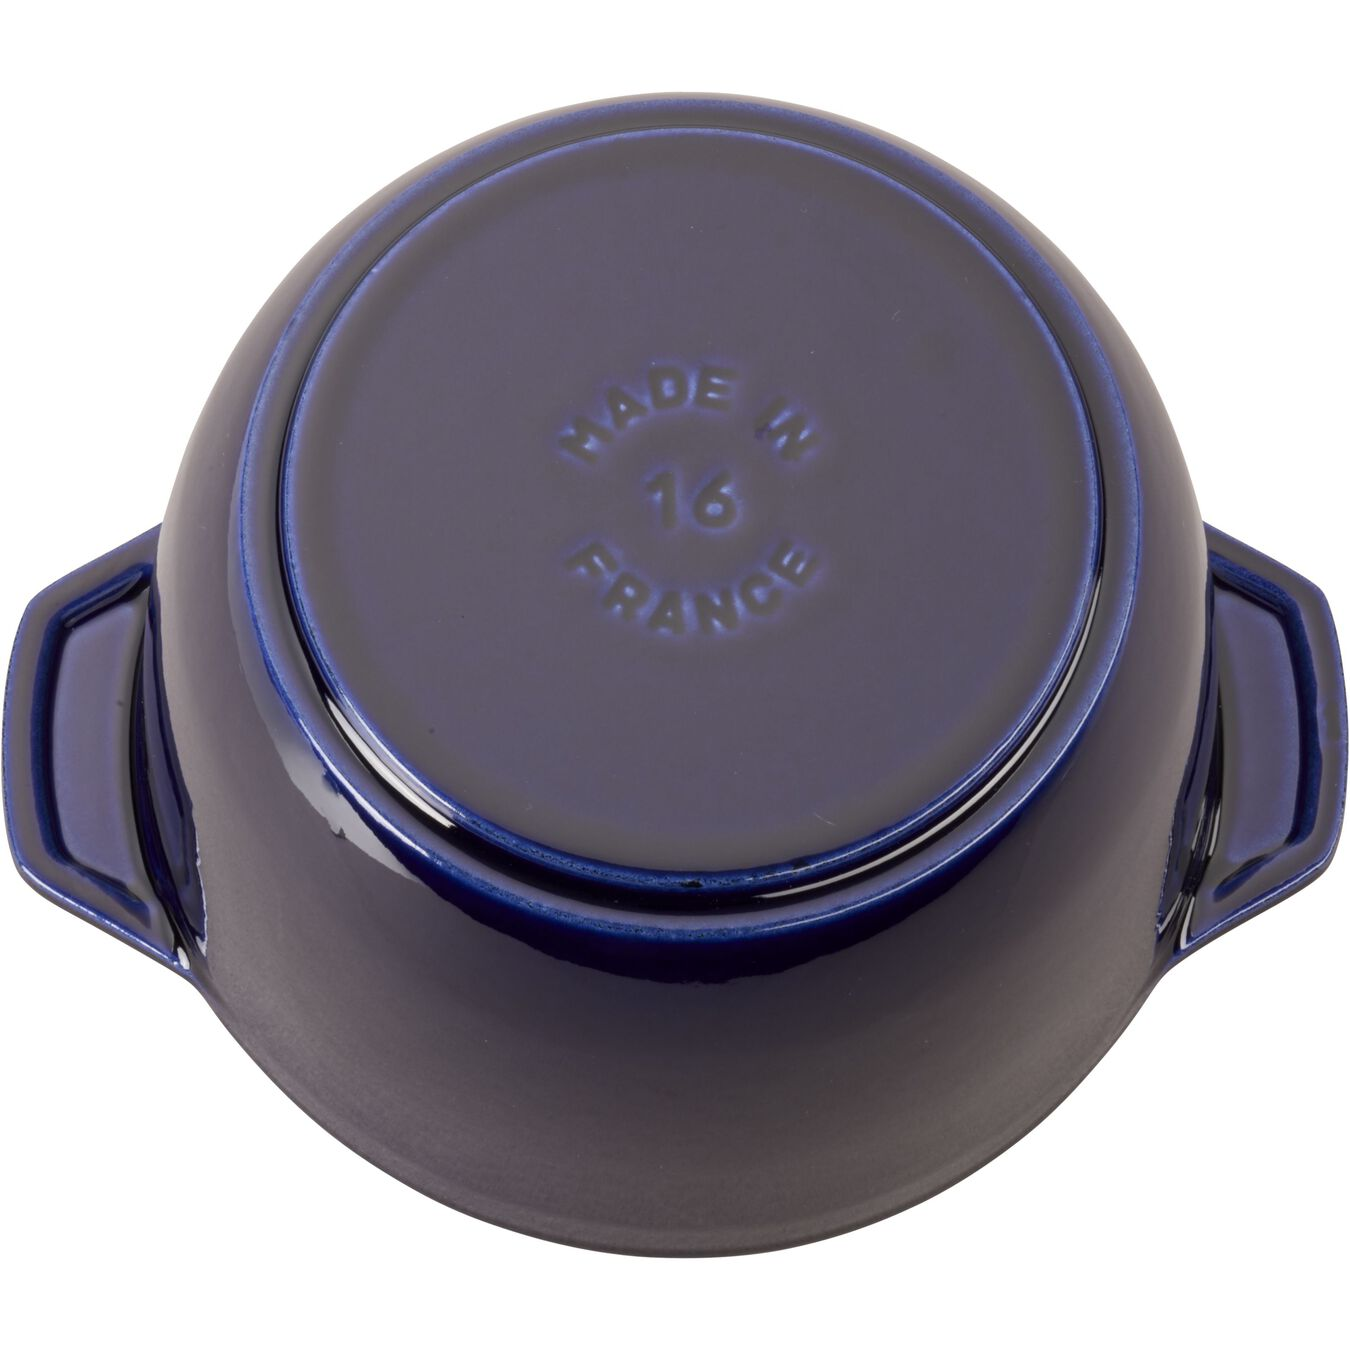 1.5-qt Petite French Oven - Dark Blue,,large 2